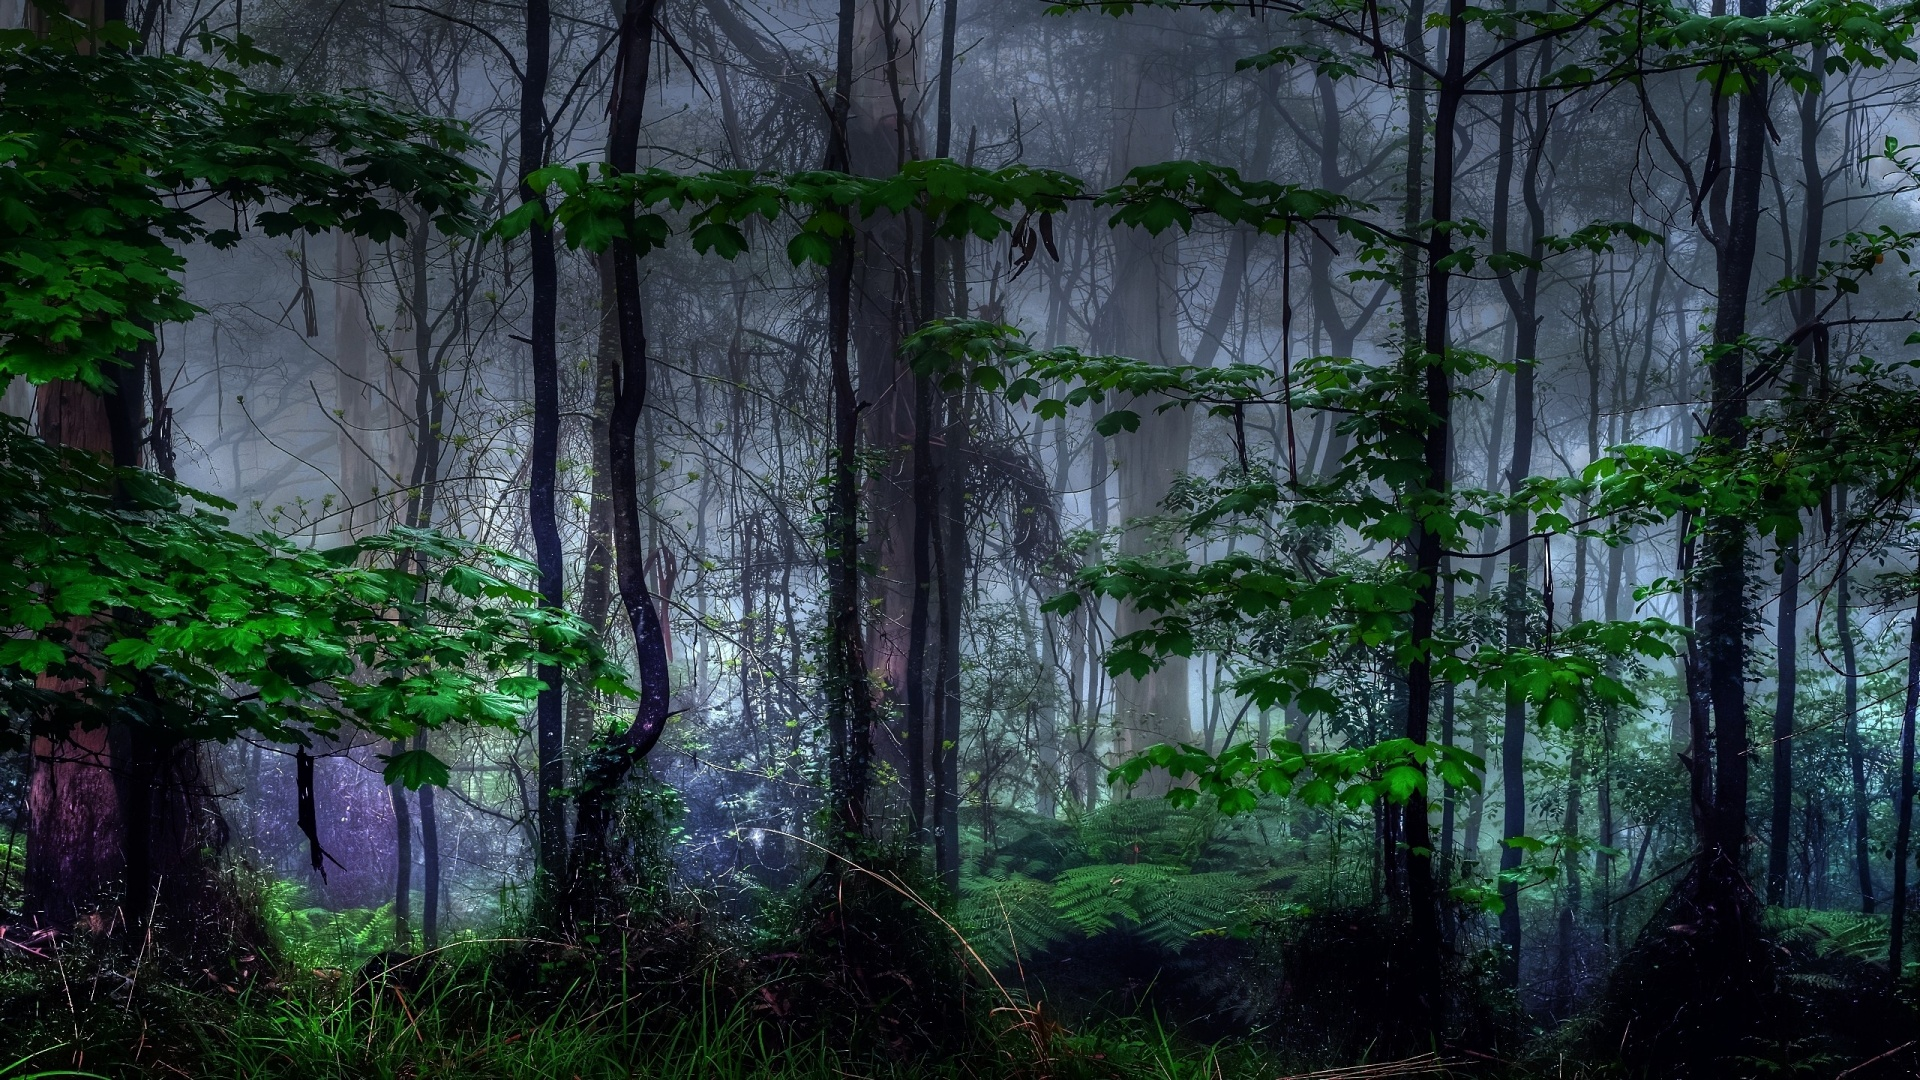 5 Nature Trees Dark Forest Mist Hd Wallpaper 859 Dark